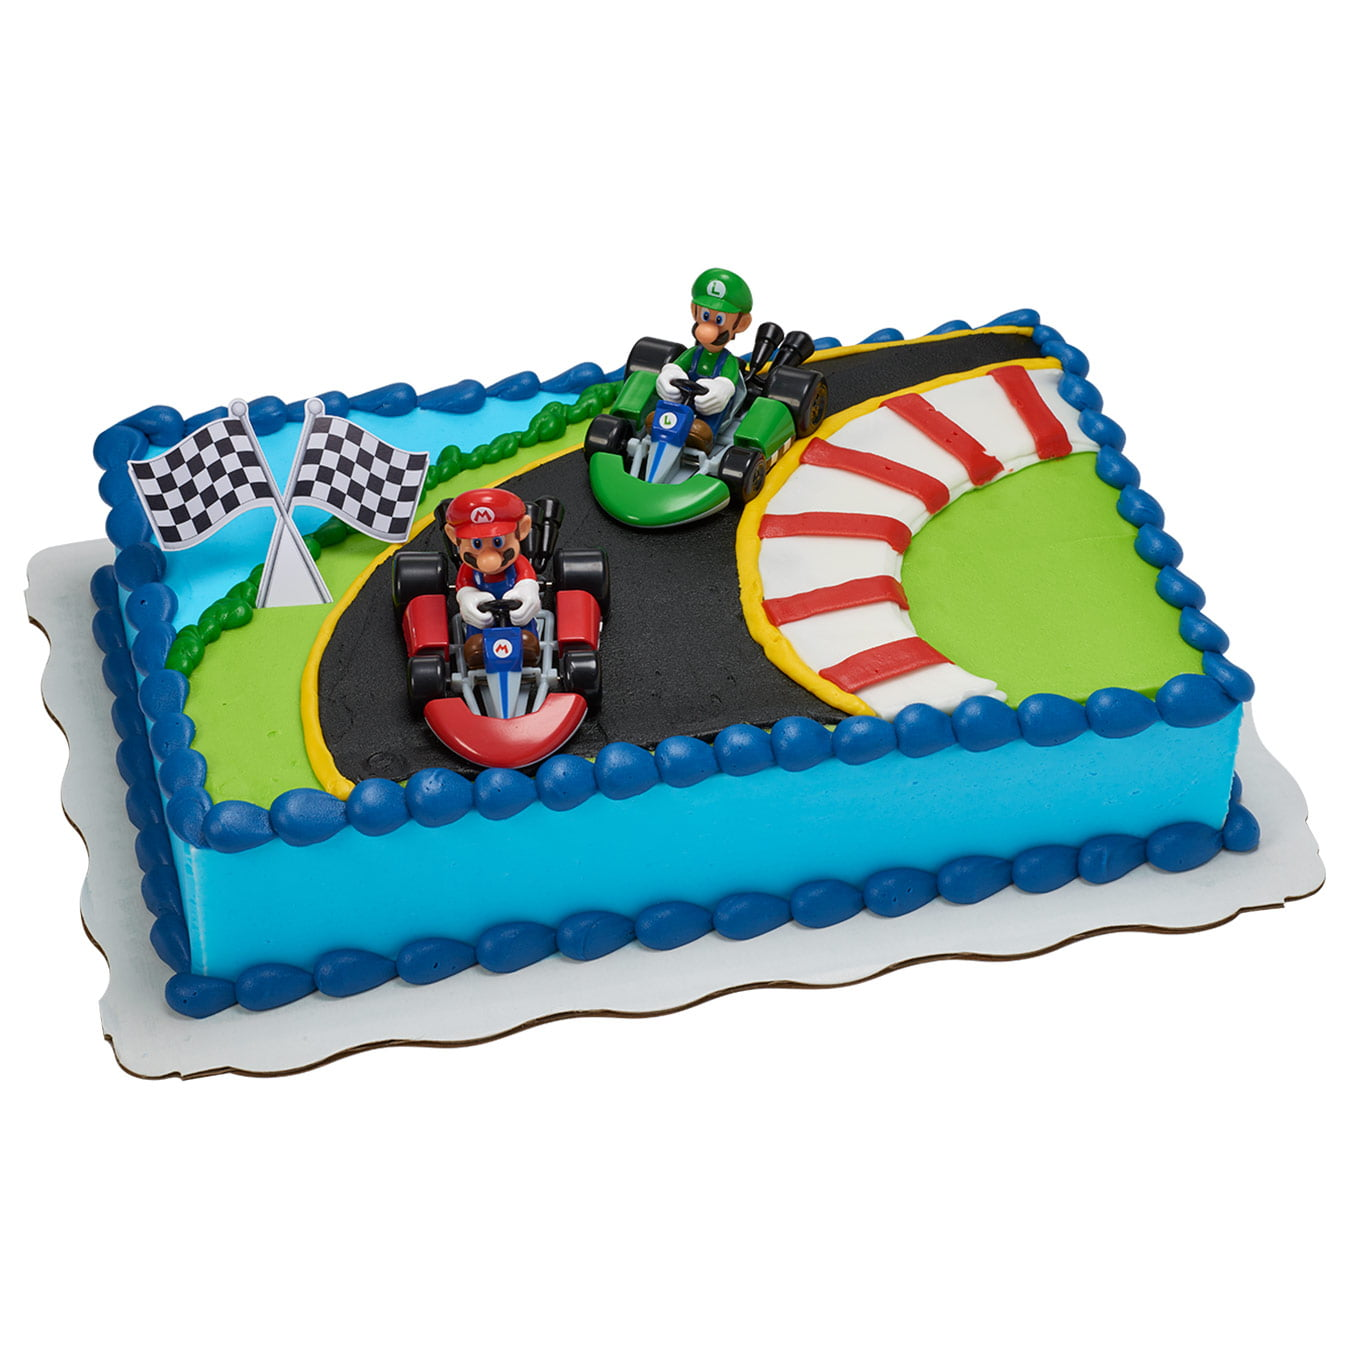 Enjoyable Super Mario Kart Kit Cake Walmart Com Walmart Com Birthday Cards Printable Opercafe Filternl